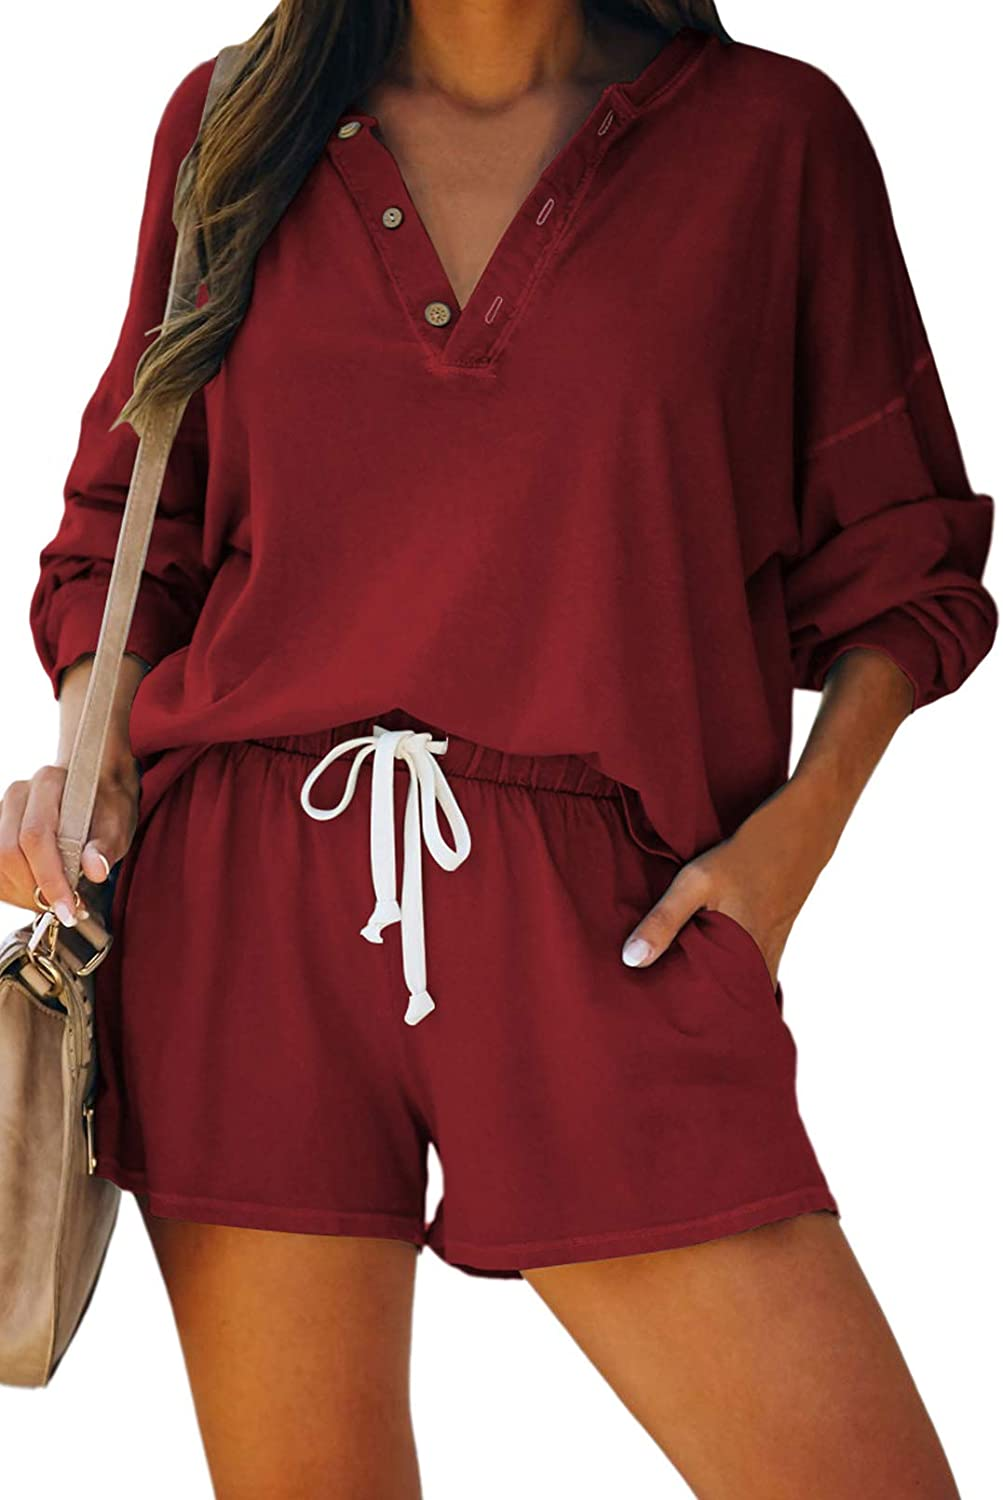 Linsery Women Casual Sweatsuit Long Sleeve Tops and Shorts Pajamas 2 Piece Outfits